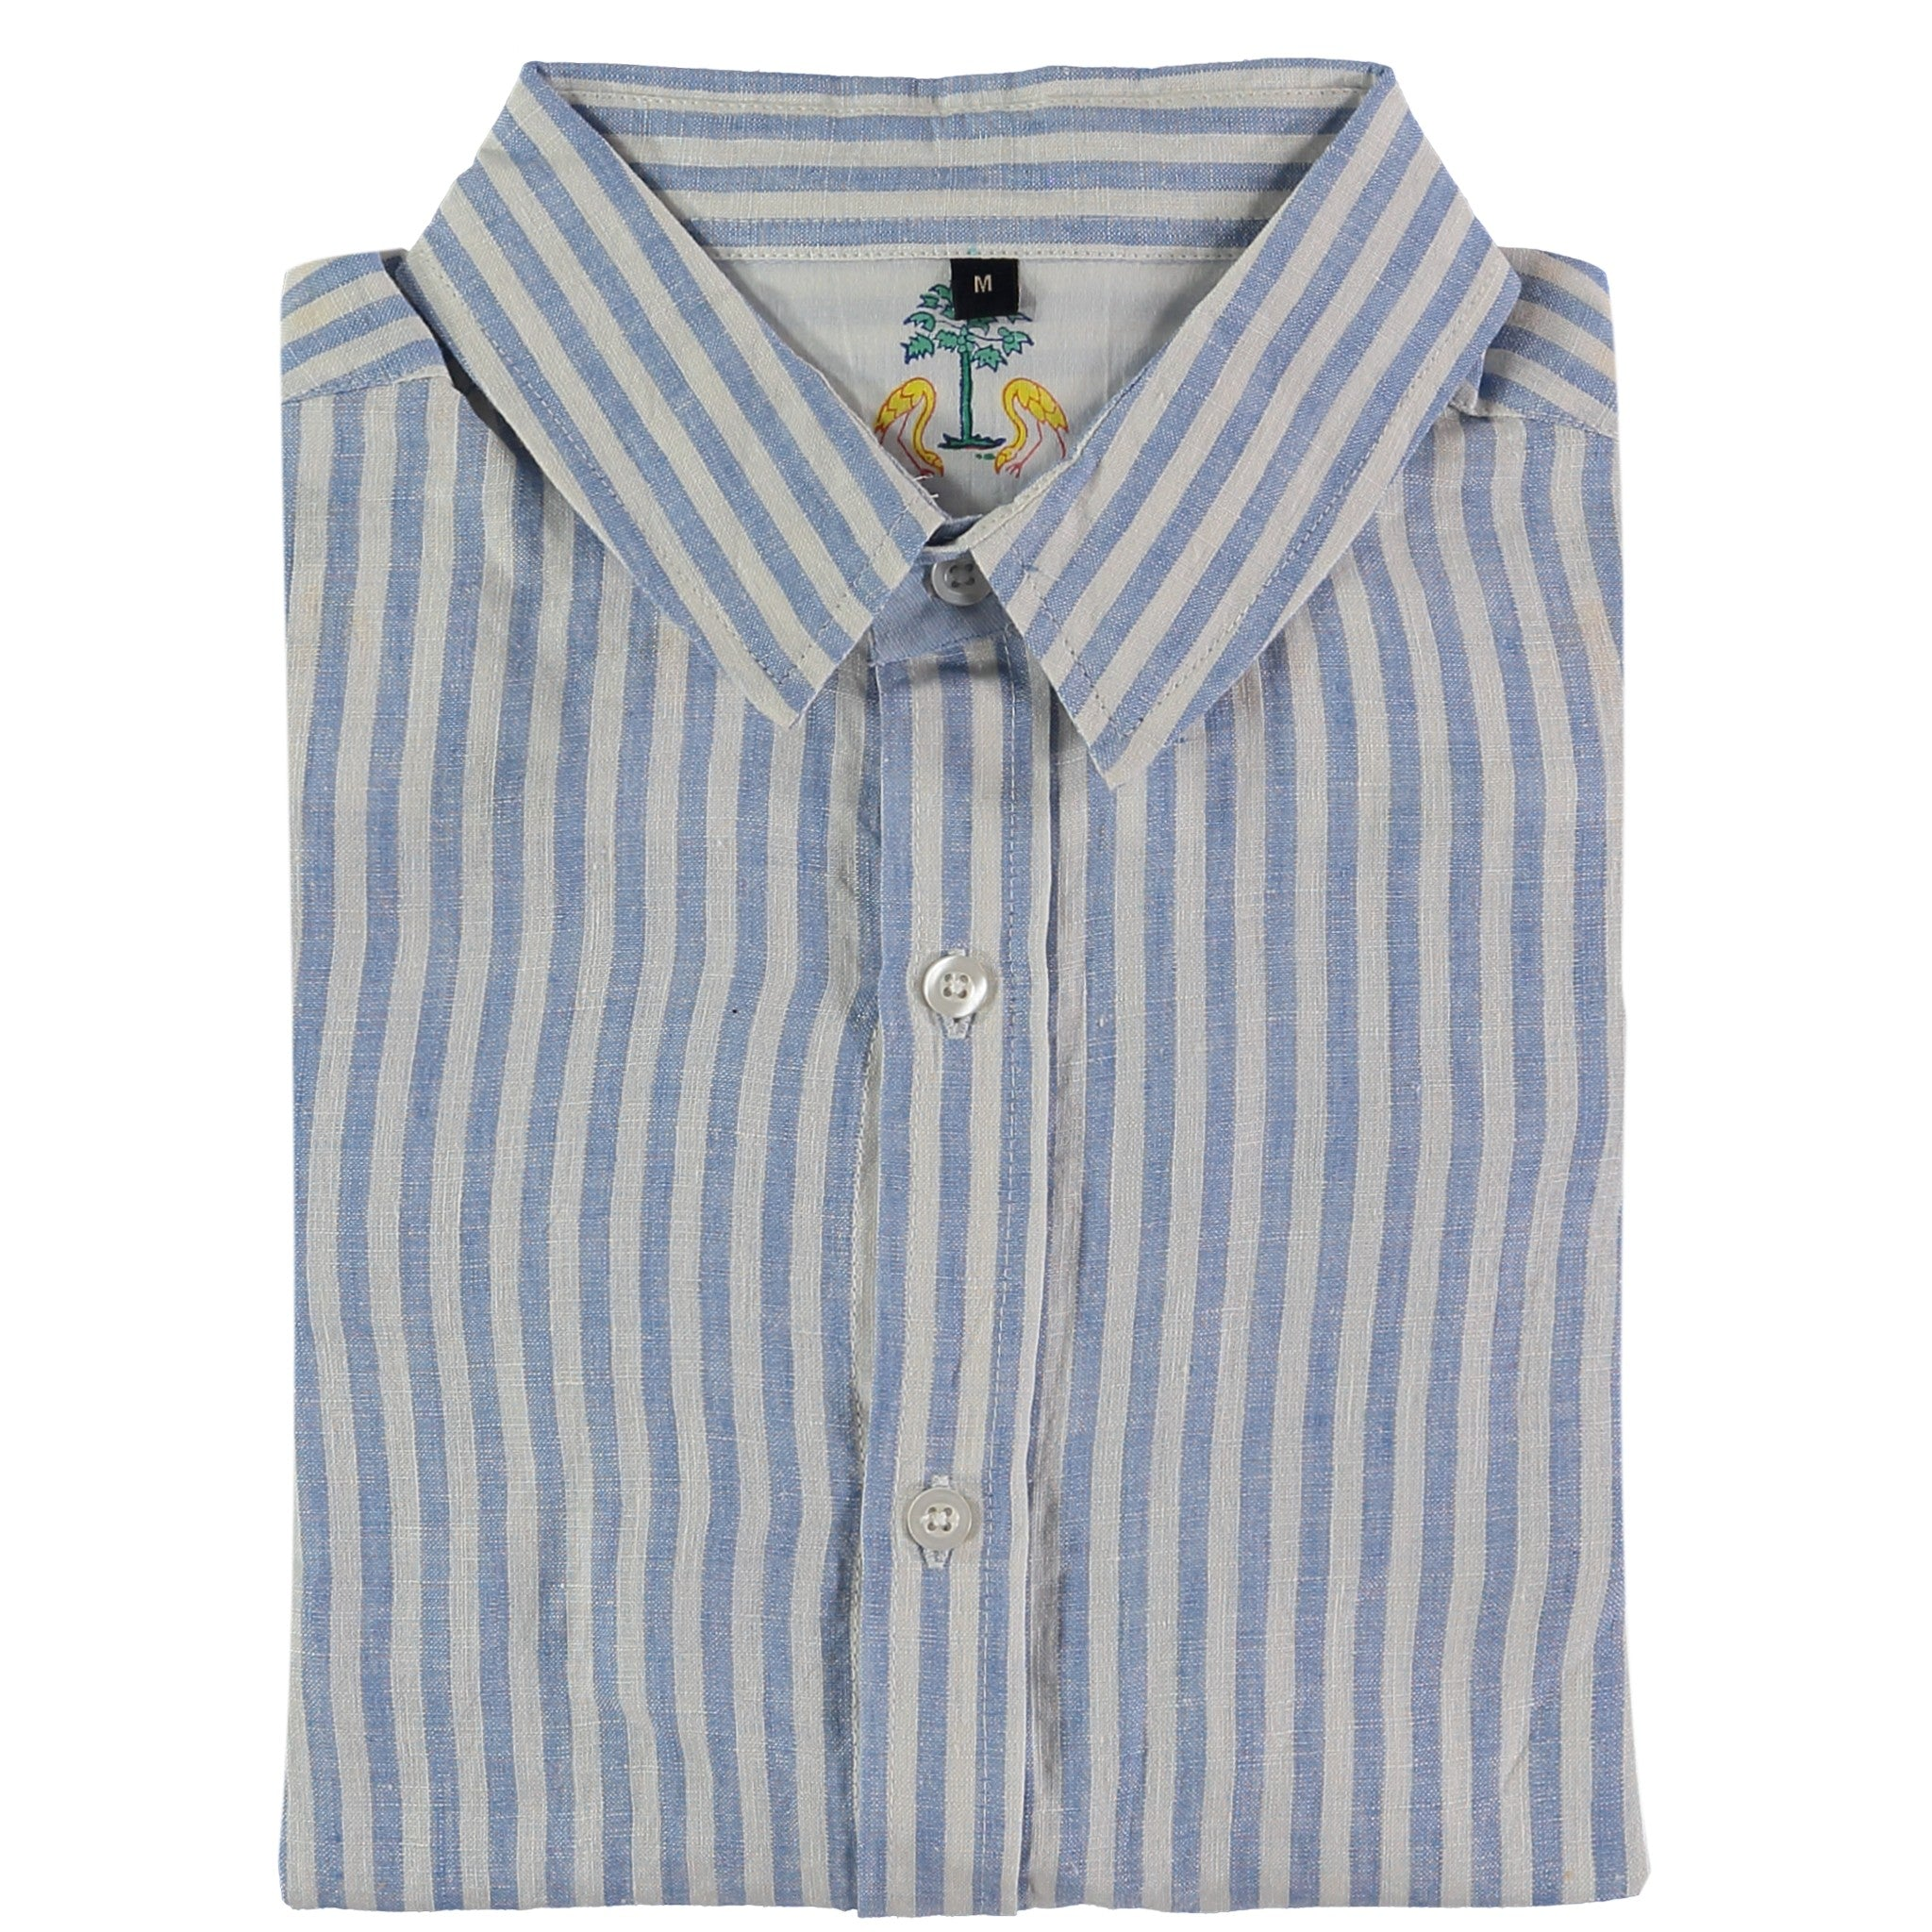 Kutch Blue Stripe Linen Shirt by Tobias Clothing on OOSTOR.com